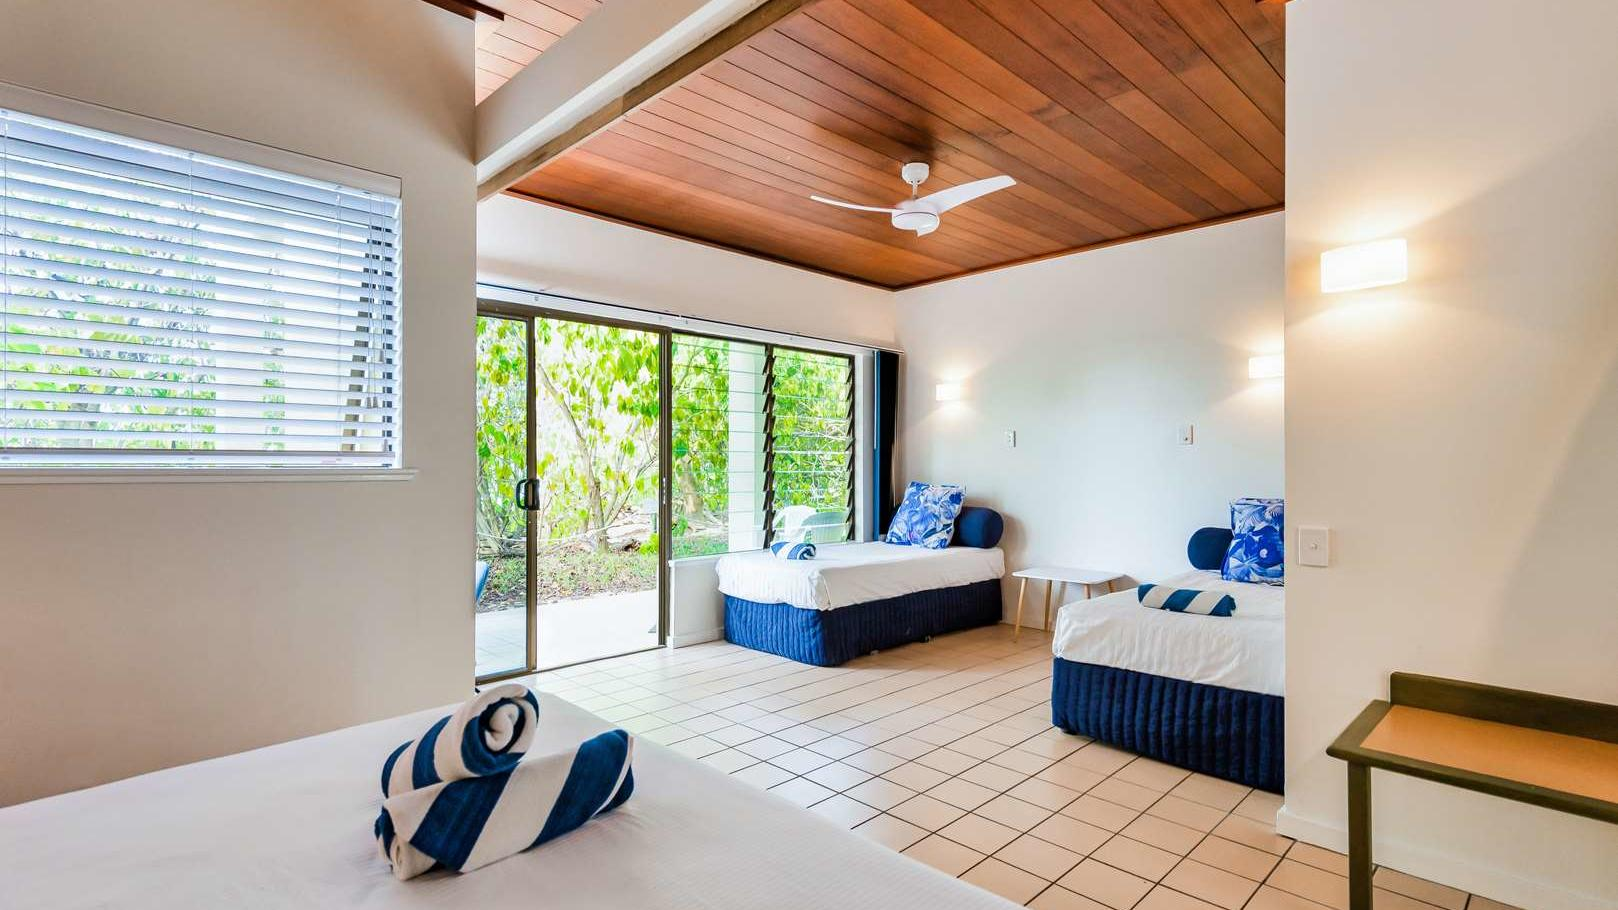 Reef Family Room at Heron Island Resort in Queensland, Australia